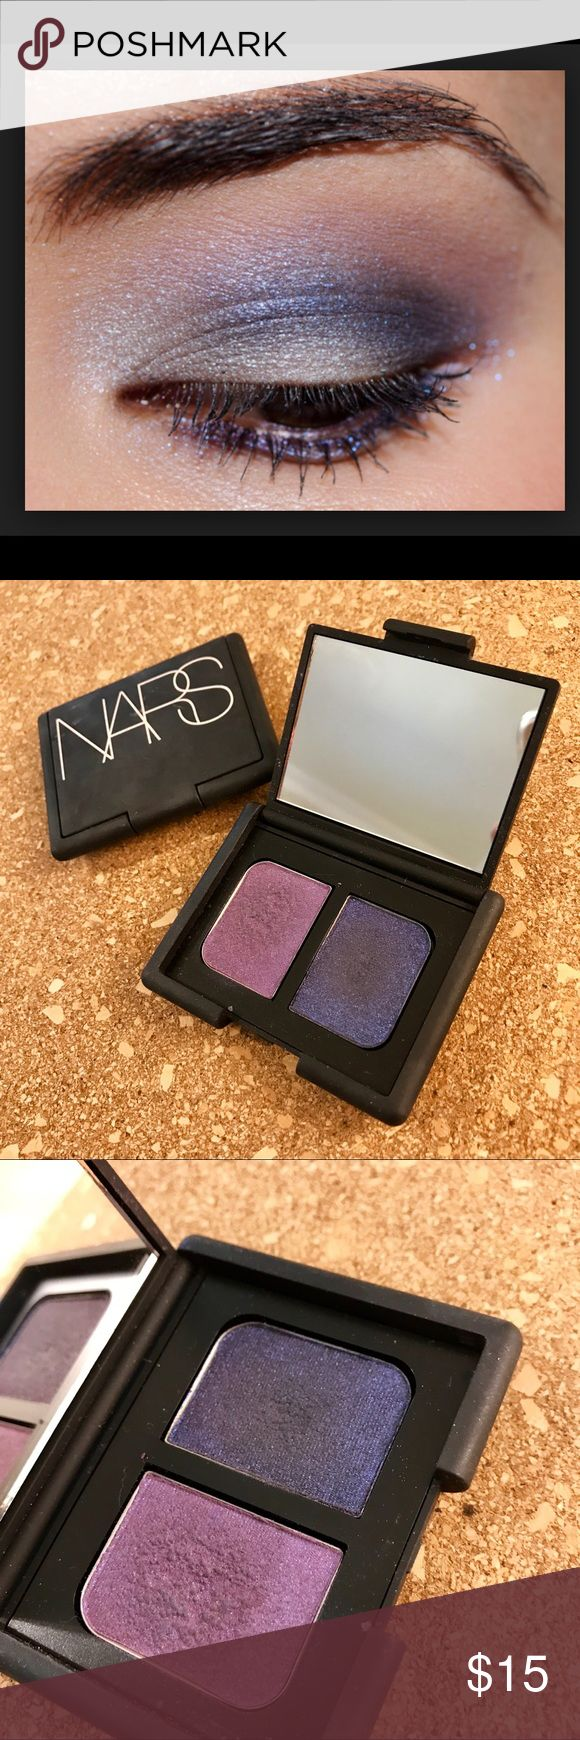 NARS Eyeshadow Duo in Marie Galante Fun, bright but sophisticated shadow duo. I have used it once but is in excellent condition. Neiman Marcus Makeup Eyeshadow